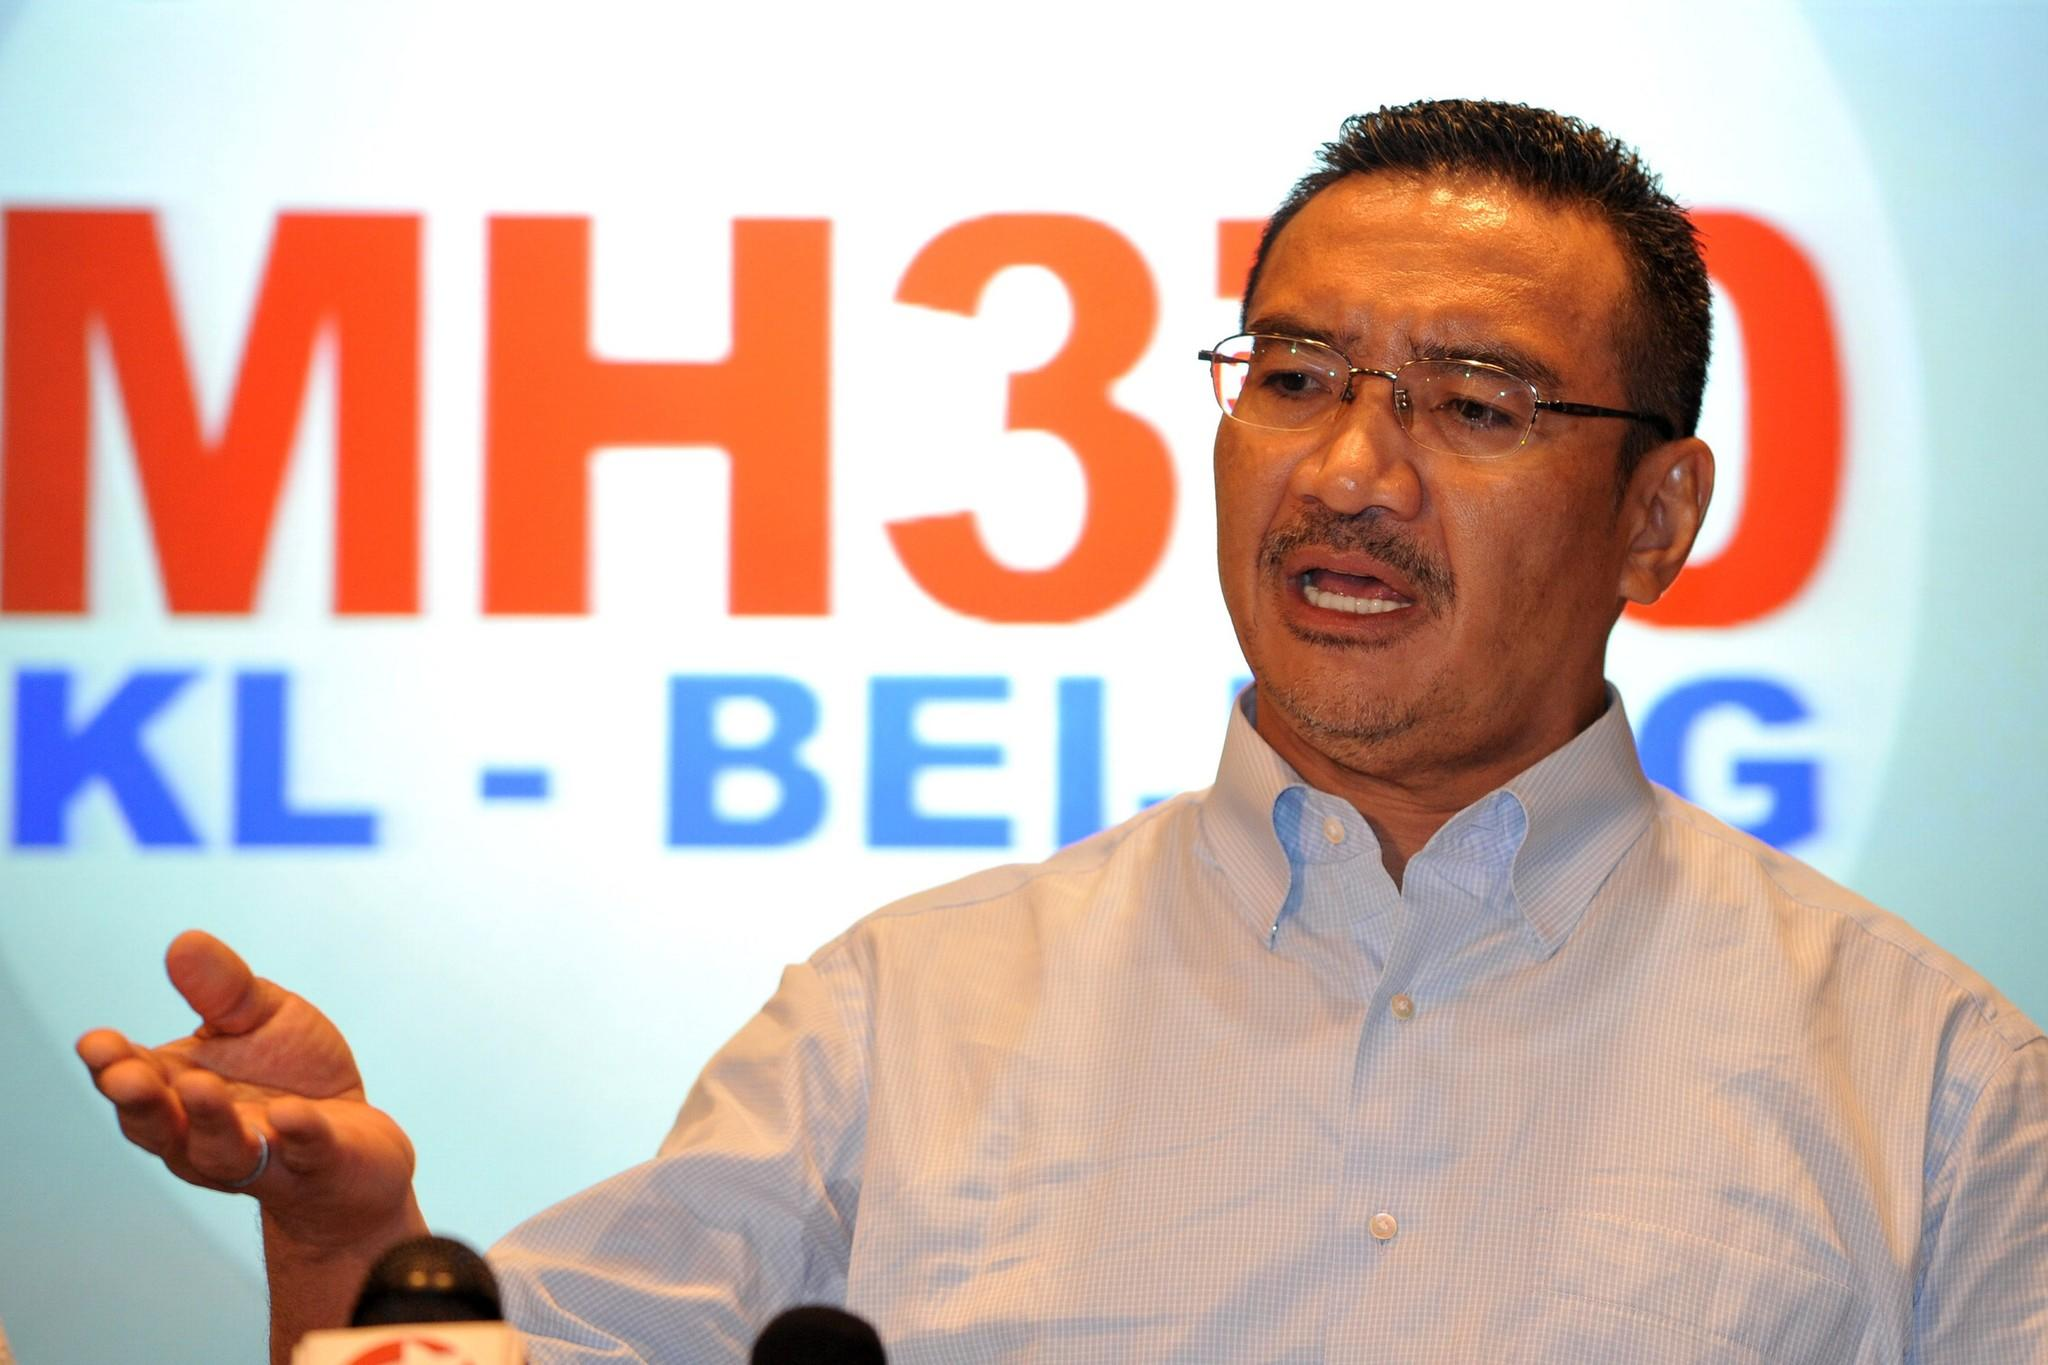 Malaysia's Minister of Defense and acting Minister of Transport Hishammuddin Hussein speaks at a press conference on Saturday in Kuala Lumpur.